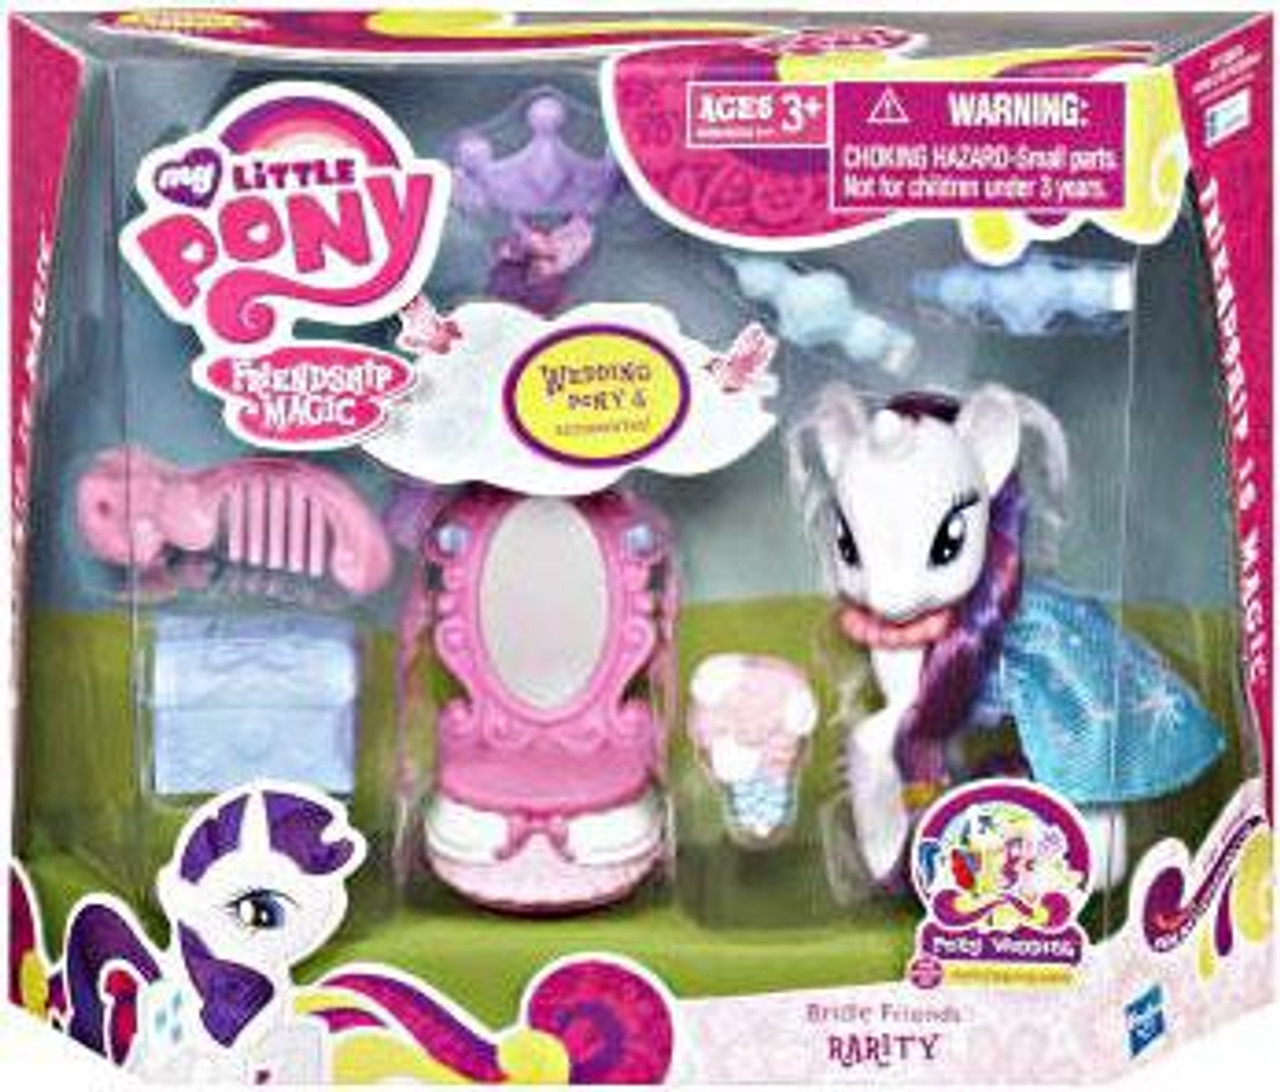 My Little Pony Friendship is Magic Pony Wedding Bridle Friends Rarity Figure Set